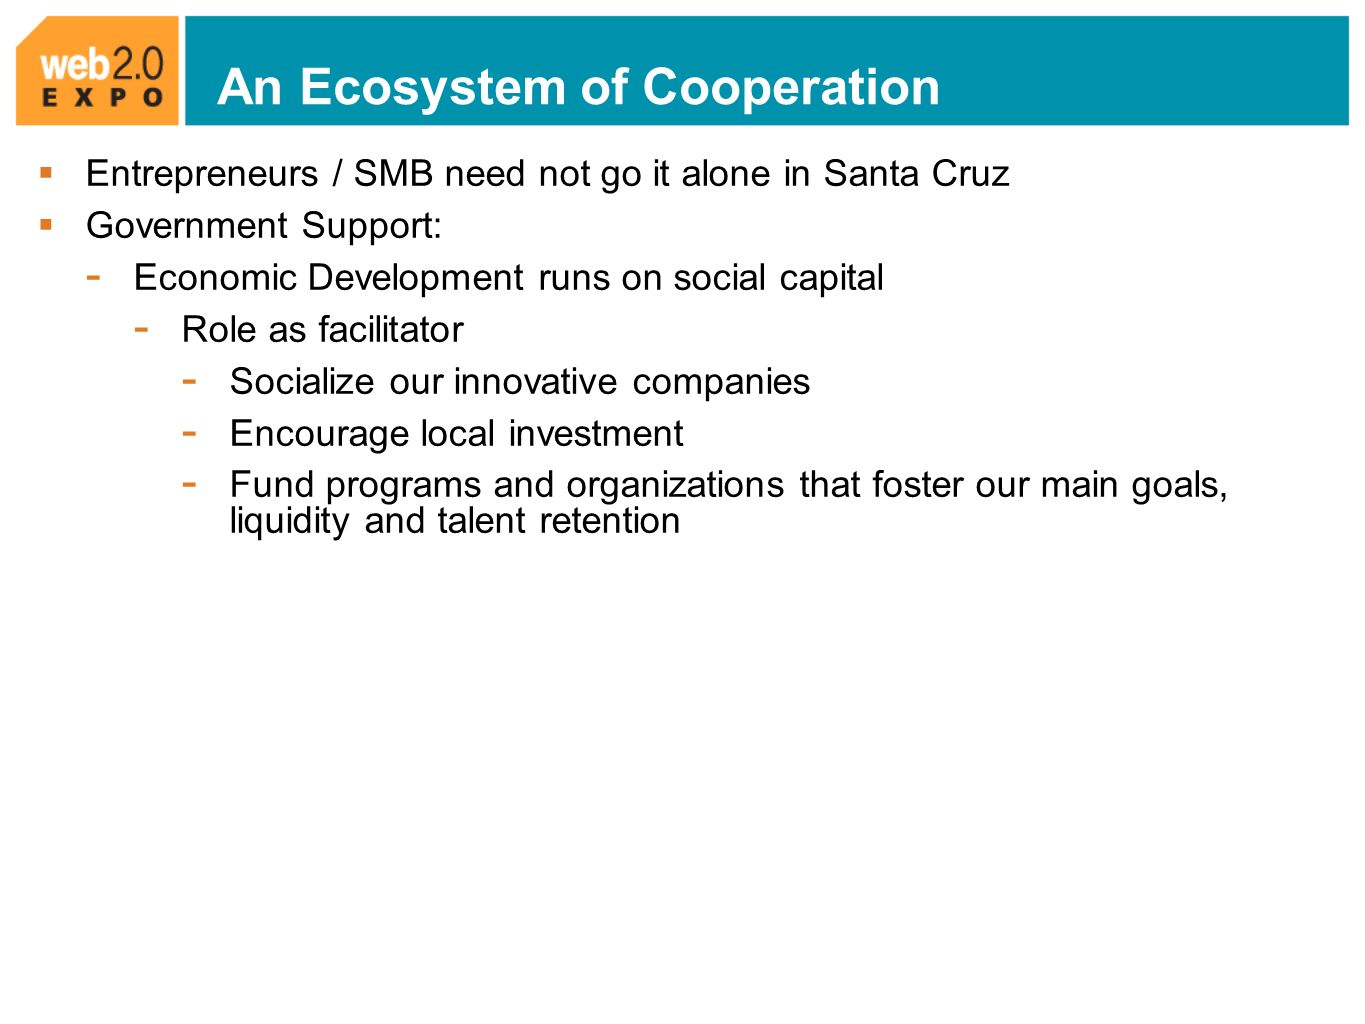 An Ecosystem of Cooperation Entrepreneurs / SMB need not go it alone in Santa Cruz Government Support: - Economic Development runs on social capital - Role as facilitator - Socialize our innovative companies - Encourage local investment - Fund programs and organizations that foster our main goals, liquidity and talent retention